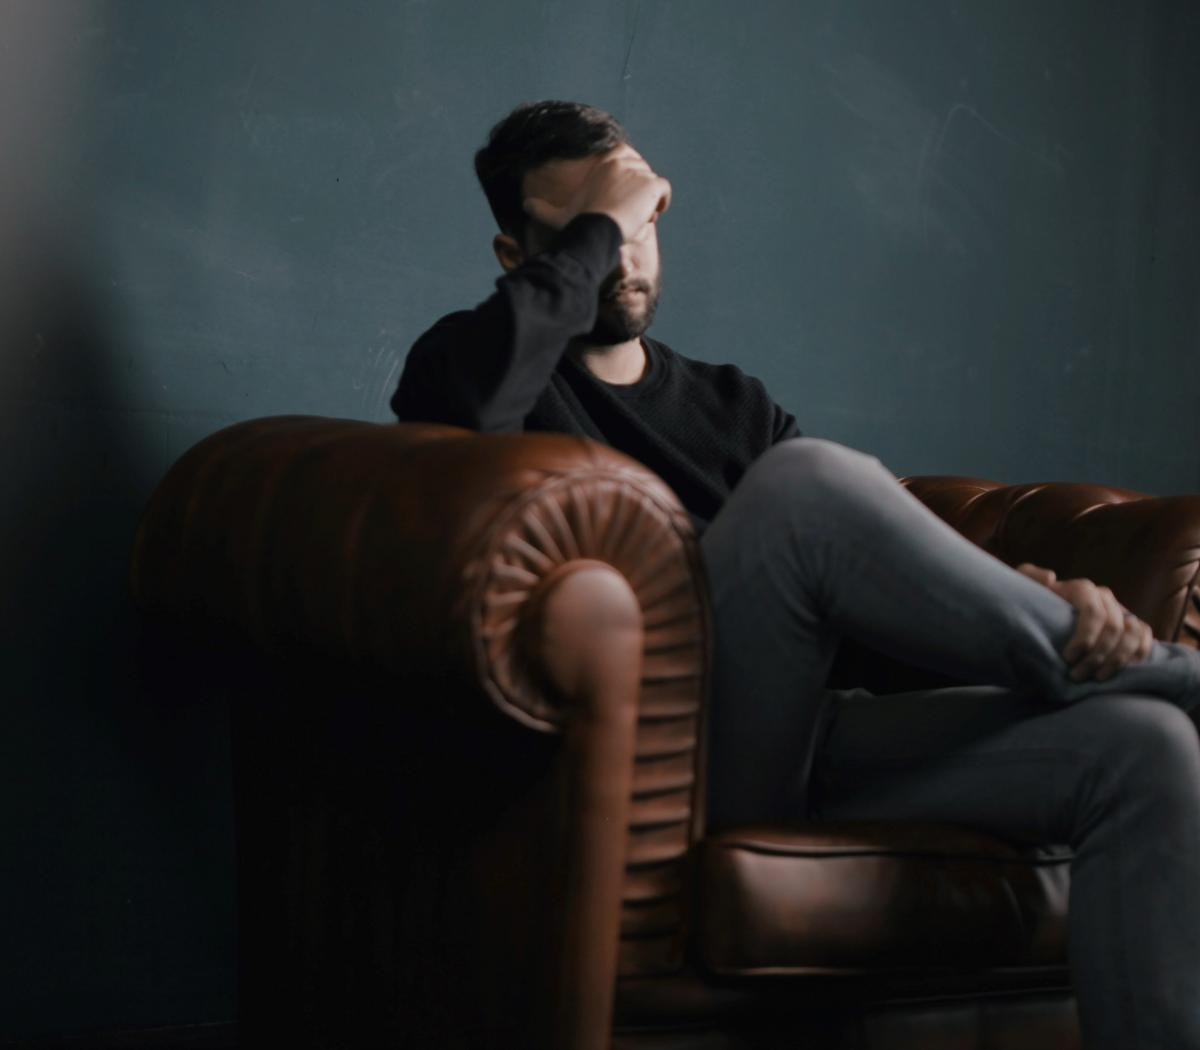 How To Reduce Financial Worries Once And For All. A man sitting on a leather couch in deep thought.